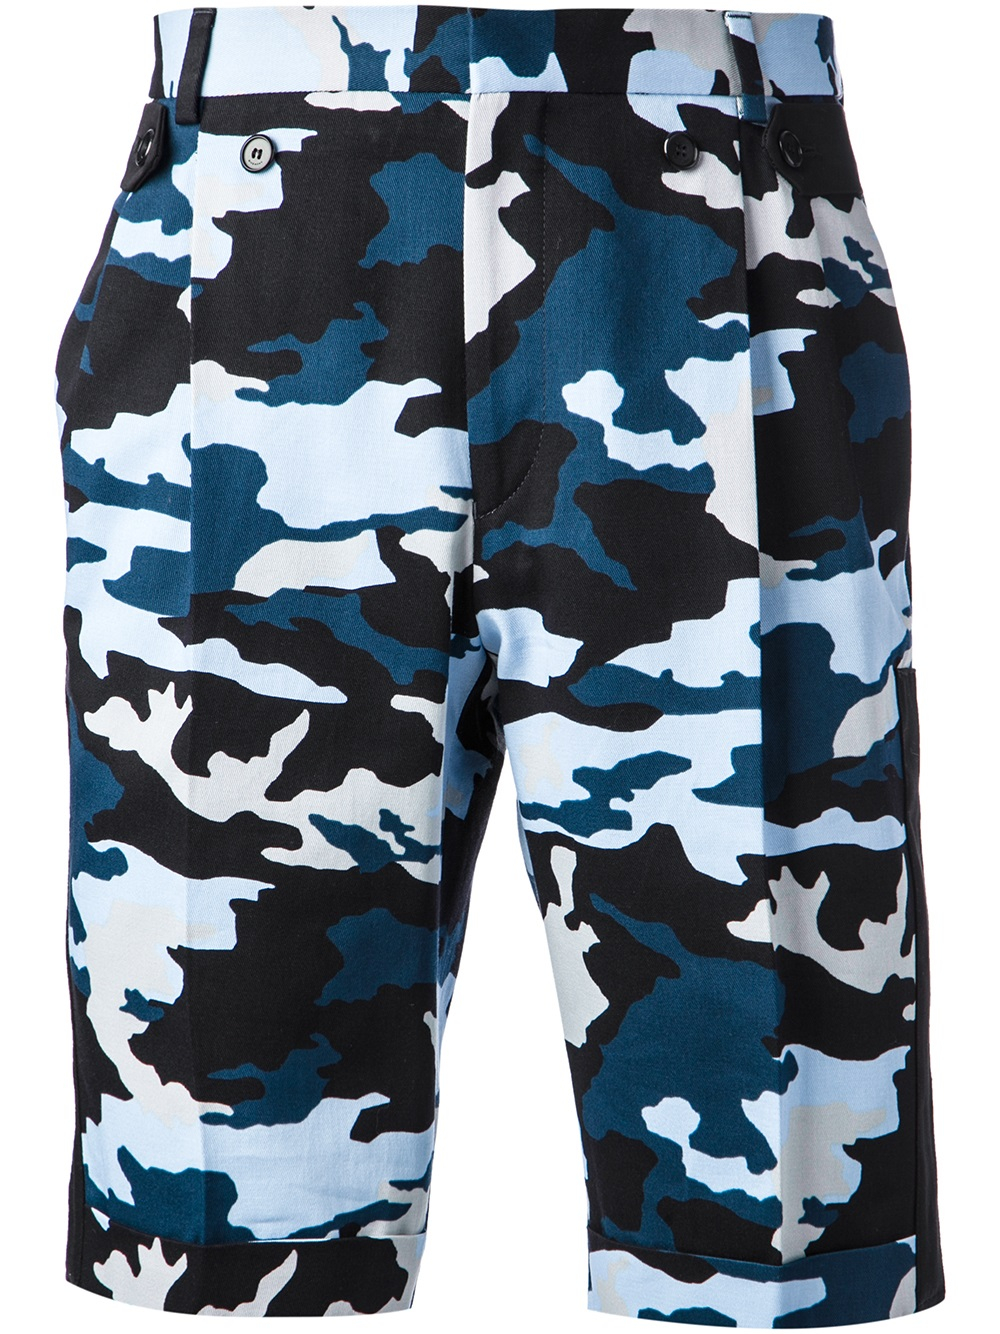 Lyst Givenchy Camo Print Shorts In Blue For Men